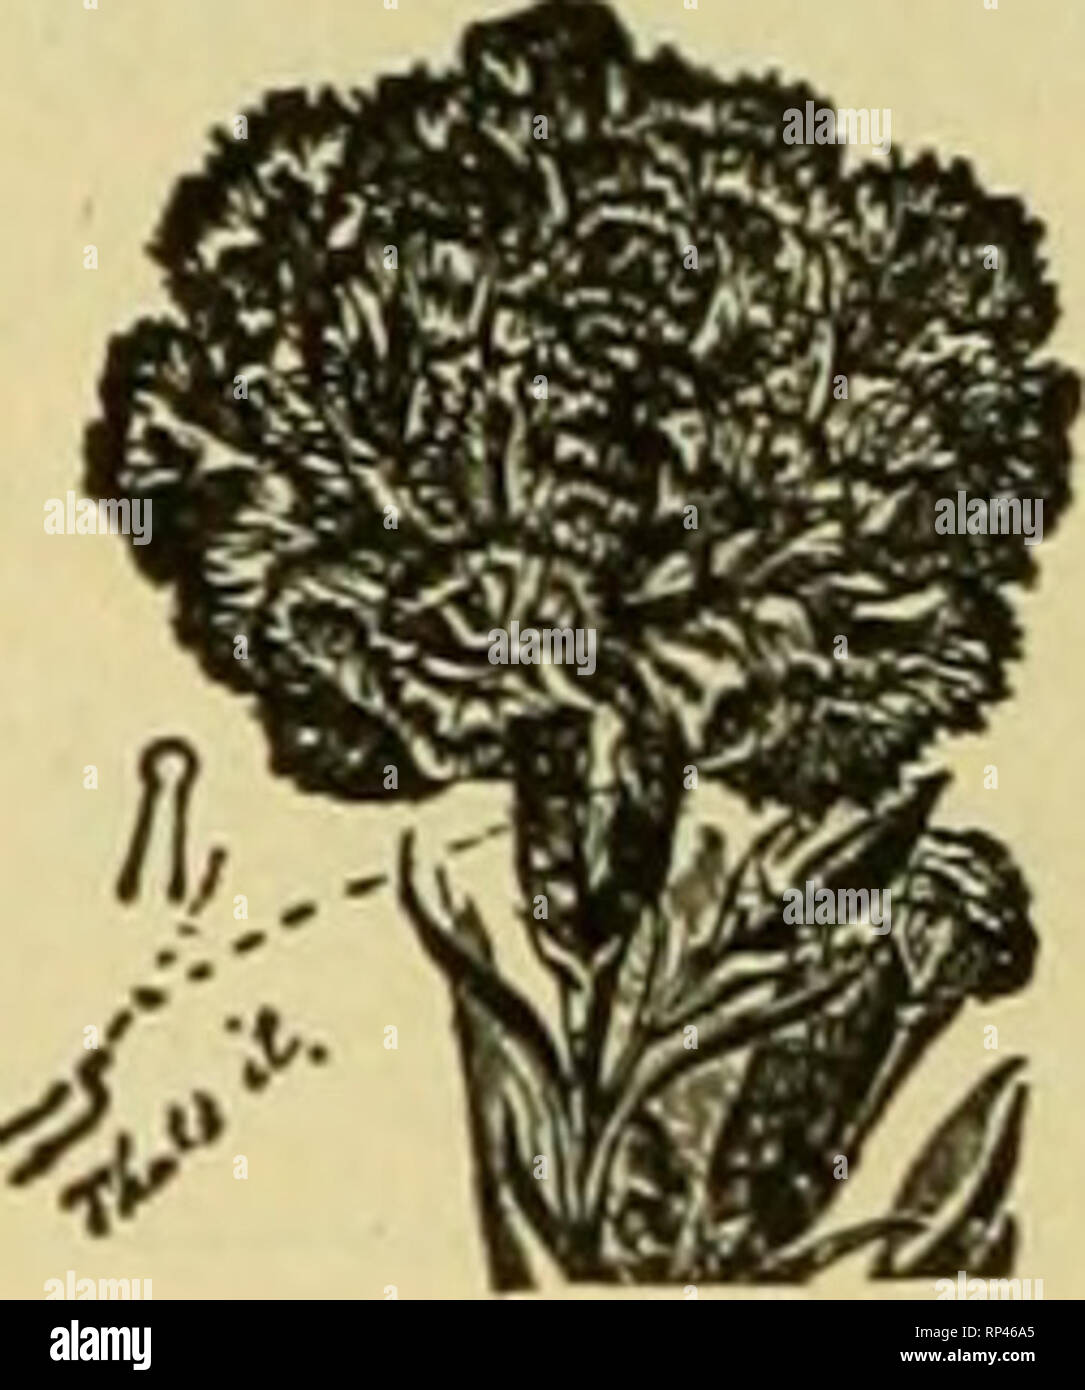 . The American florist : a weekly journal for the trade. Floriculture; Florists. 164 The American. Florist. Feb. 5, Index to Advertisers Advance Co The.. .Ill .Mpha Floral Co 14. Frey Alois P 125 Frey C H 146 Frey & Frey 145 Kriedman 143 Fronient H E 141 Furrow & Co 146 Galvin J bos F 145 Garland MlgCo 160 Gasser I VI Co 145 Gitalin & Co 162 Godineau R & M 150 Gorham & Limpus..l65 Graham A & Son 143 Grand Rapids Floral Lo 146 Grasselli Chemical Co 162 Grimm & Gorly 146 Gude Bros 144 Gunterberg M C 132 Guttman & Raynor (Inc) 141 Haile W E 149 Hardesty & Co .. Stock Photo